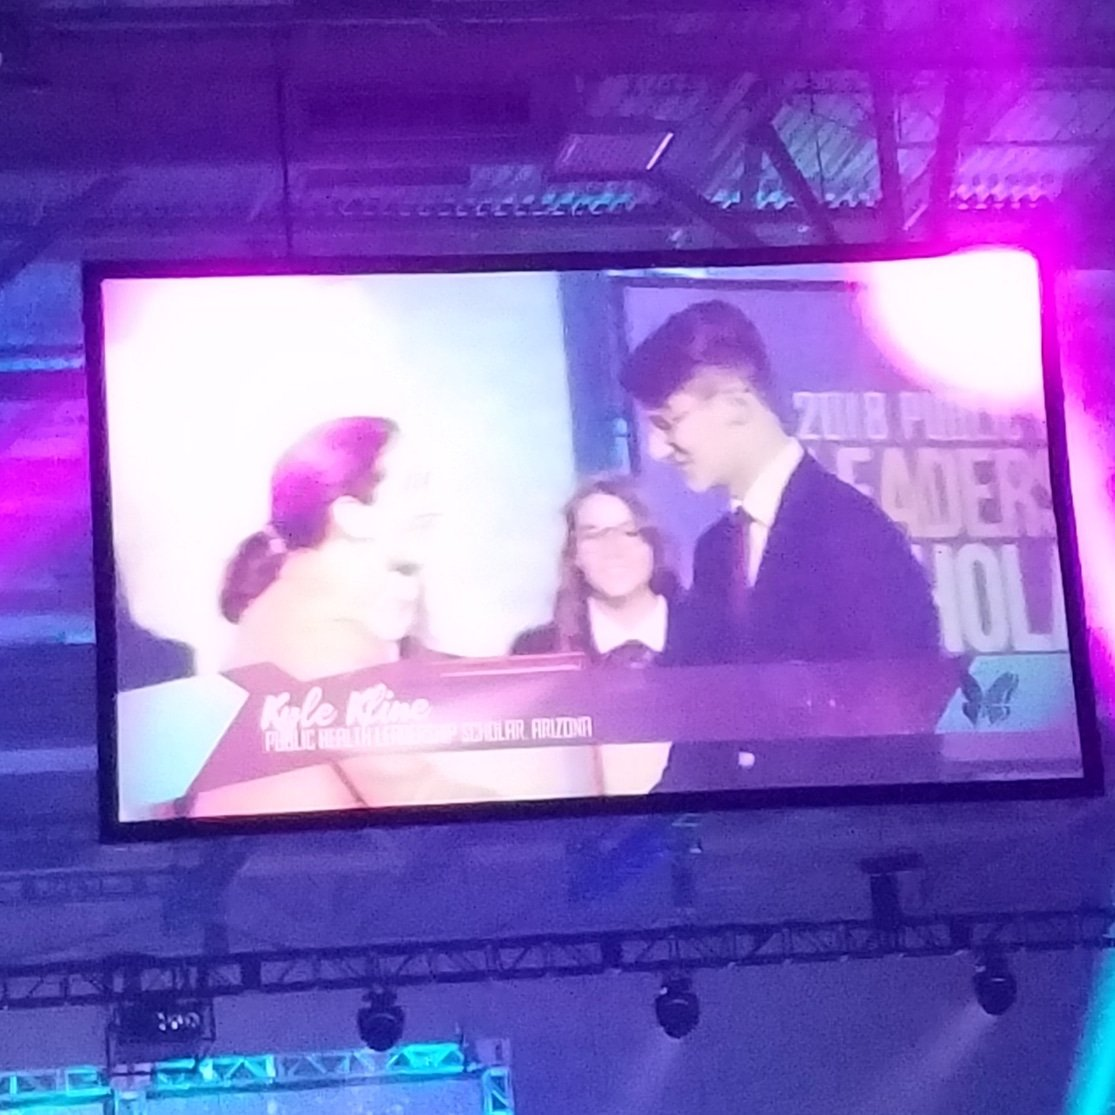 CONGRATULATIONS @KyleKline_ for being chosen as a Public Health Leadership Scholar. How exciting to intern with the @Surgeon_General @PVHSCREST @PVHS_CREST_HOSA #AZHOSAmoments #HOSAILC2018